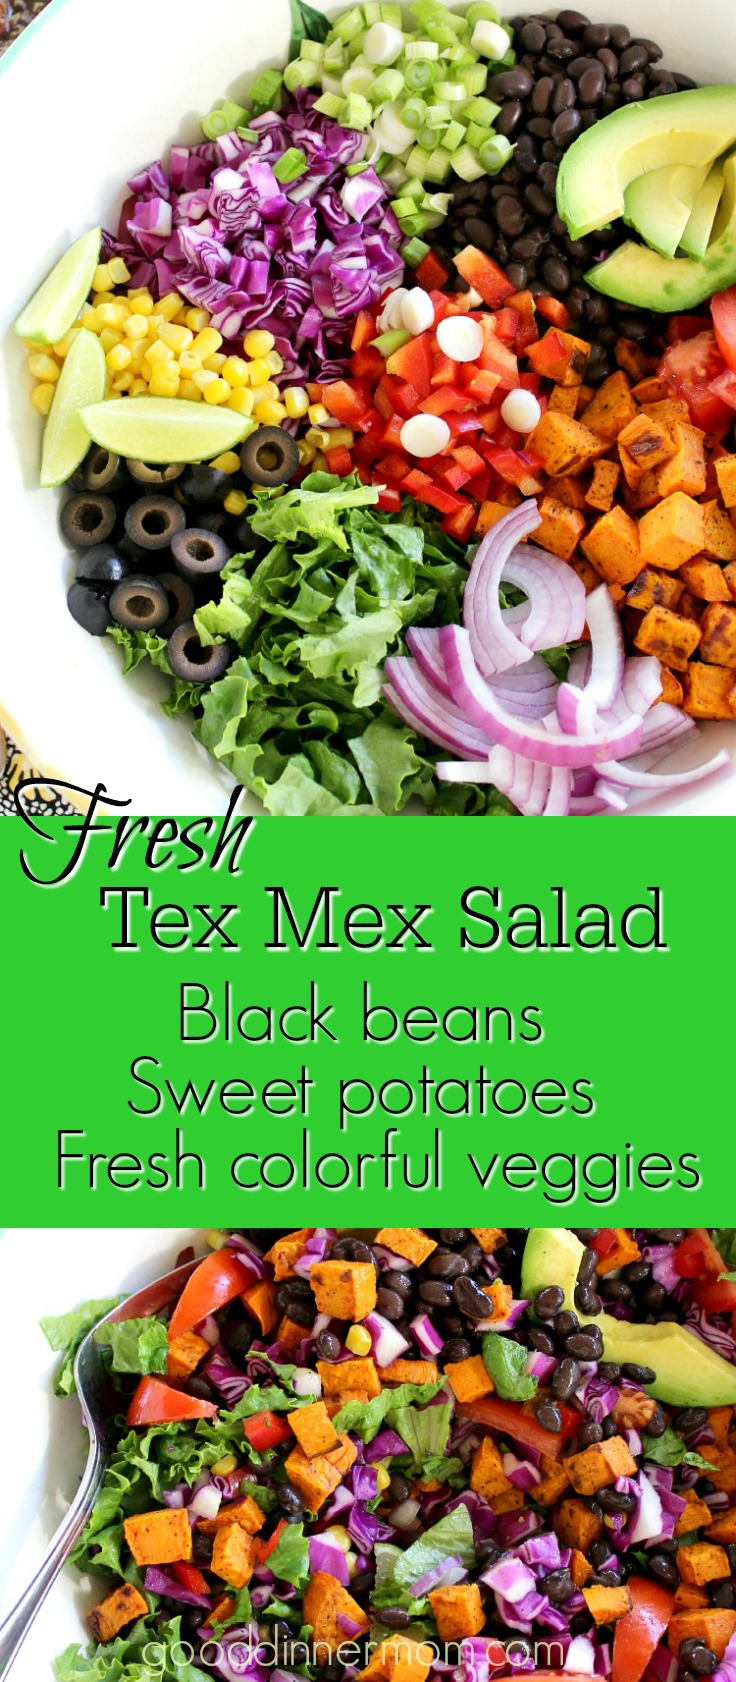 Black beans, roasted sweet potatoes and other colorful vegetables make thisTex Mex Sweet Potato Salad a great main dish or side with chicken or salmon.